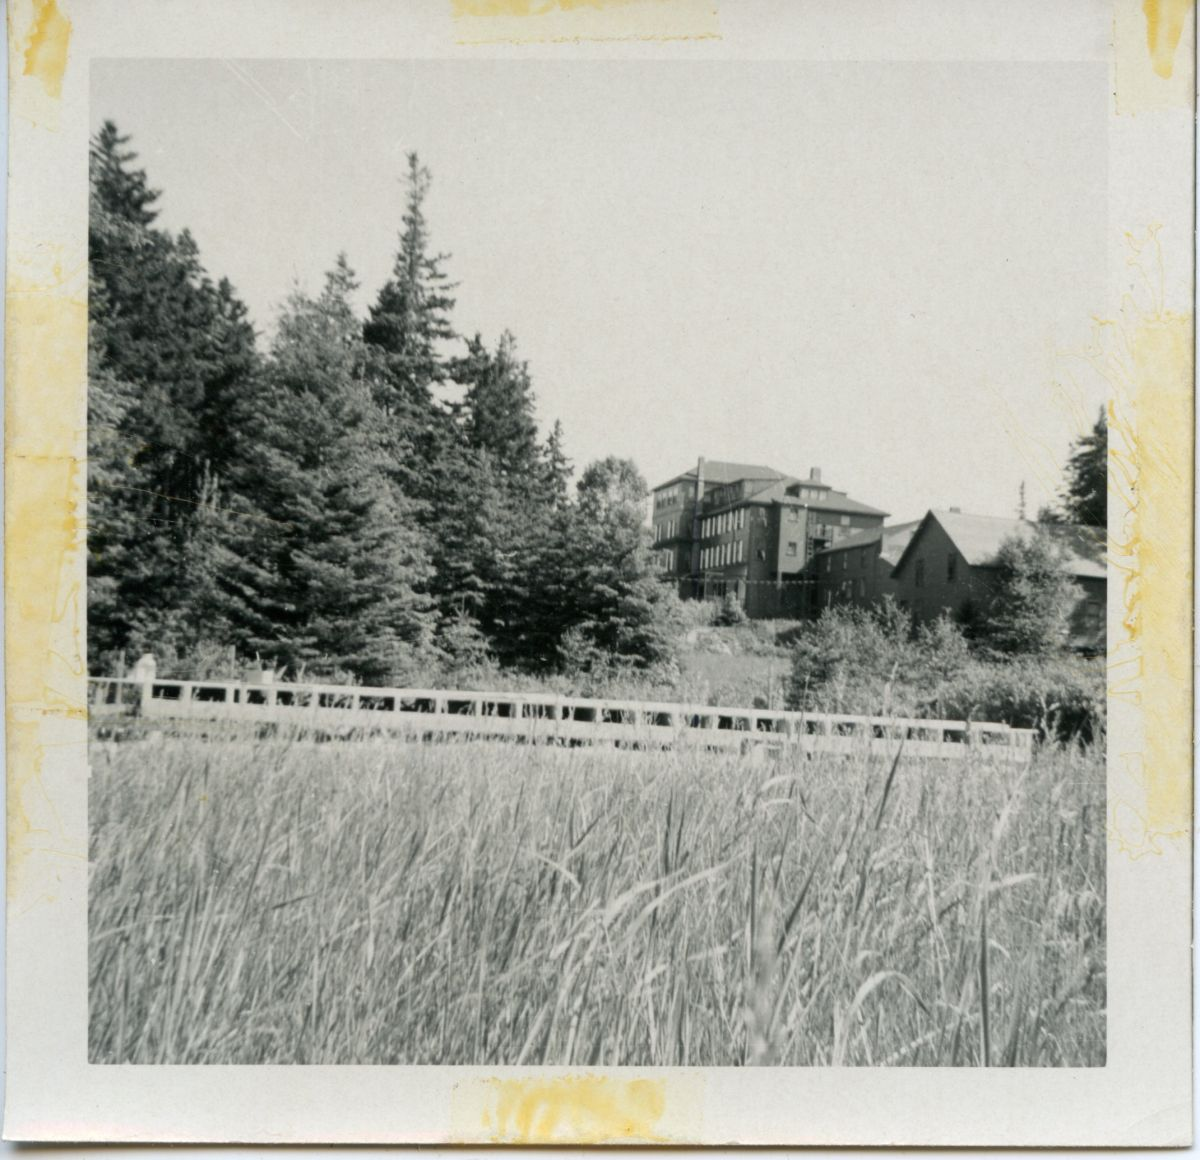 View of Dirigo Hotel from the Conant Cottage